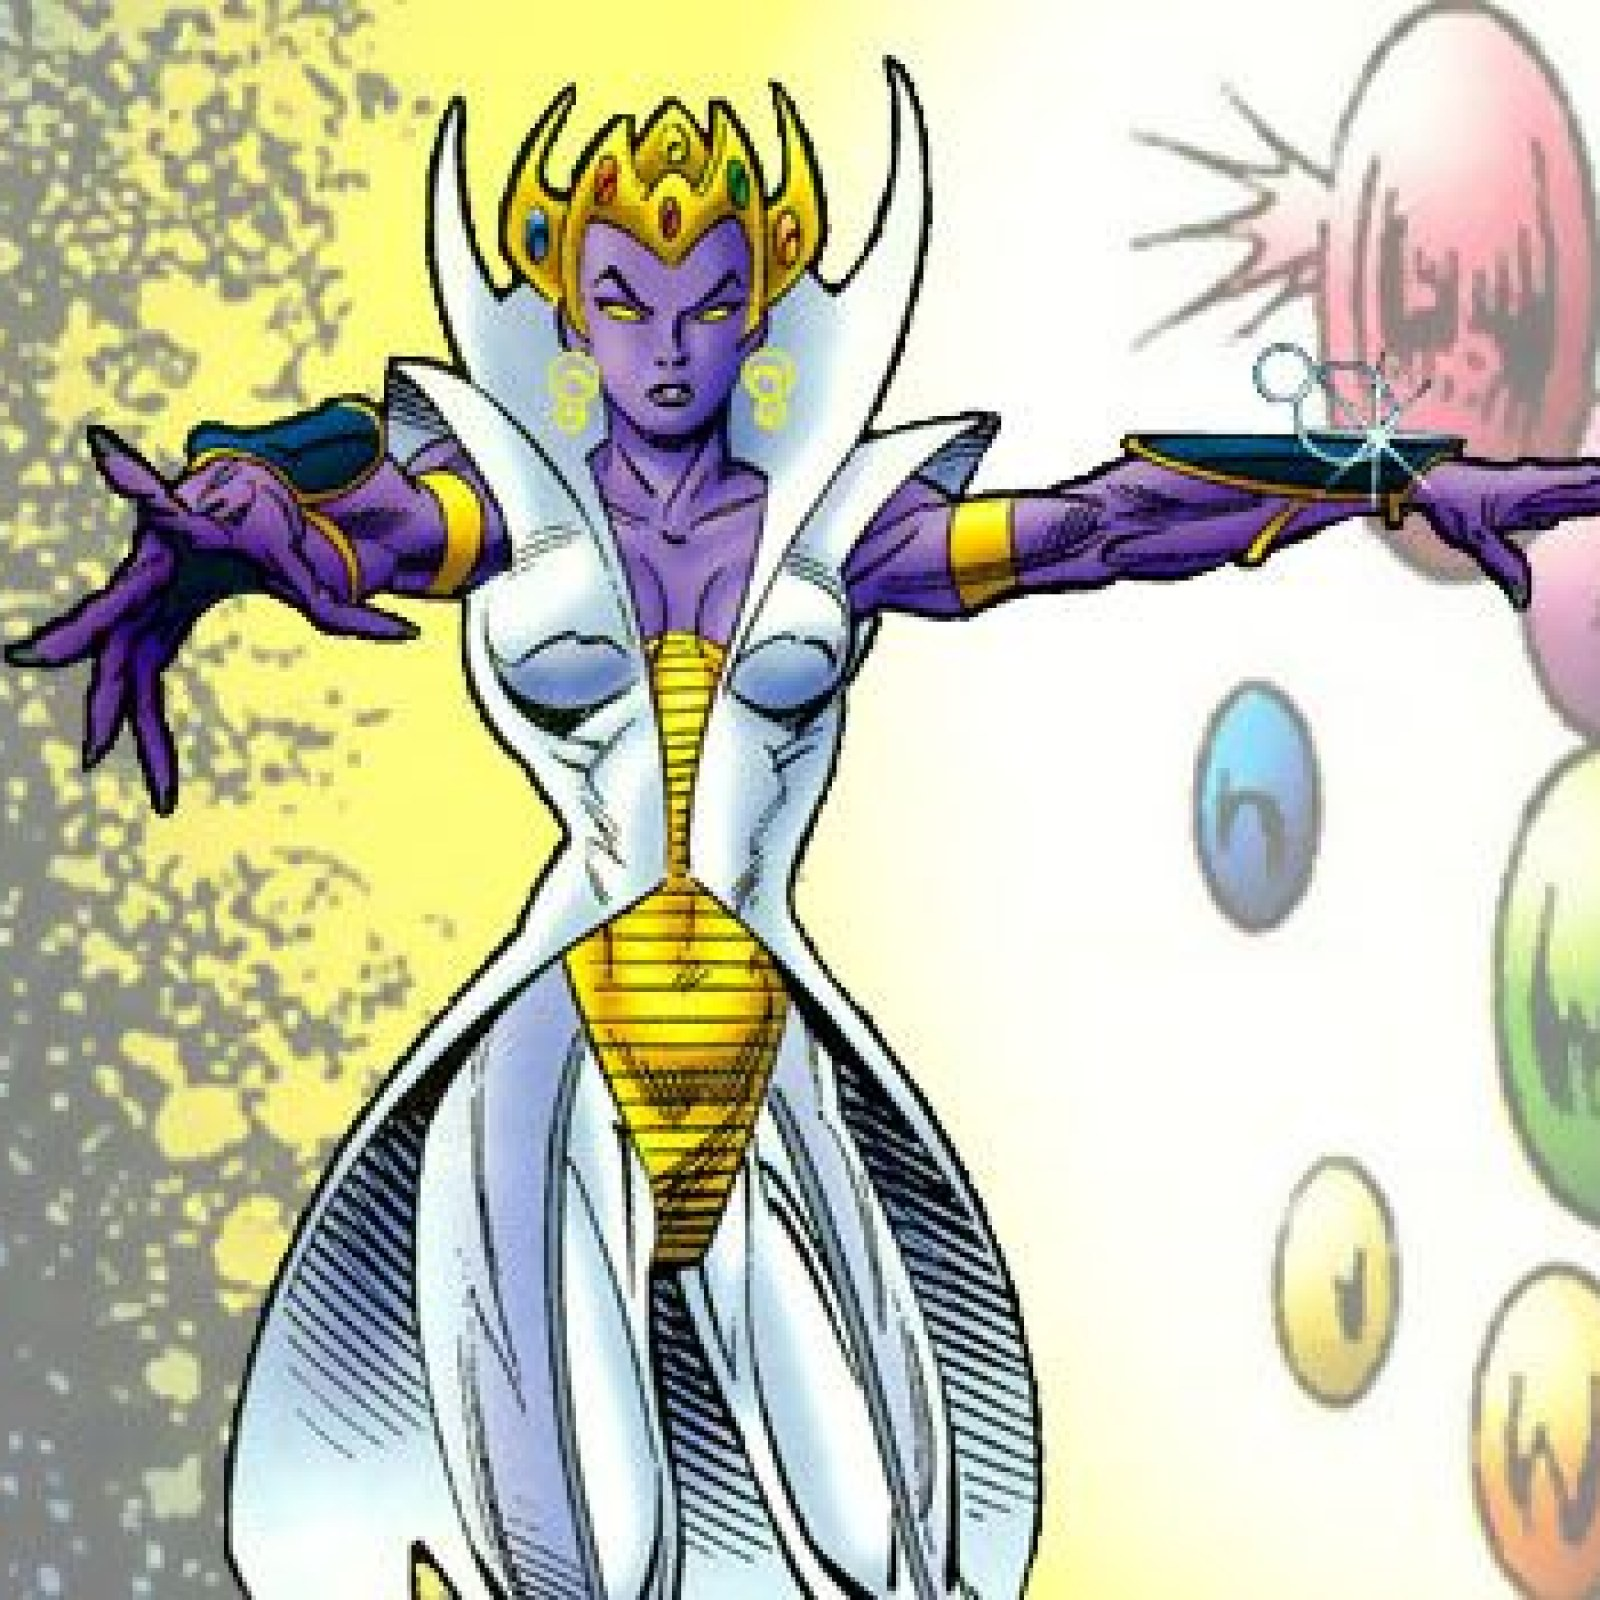 Avengers 4 Theories: What is the Seventh Infinity Stone? The Ego Gem